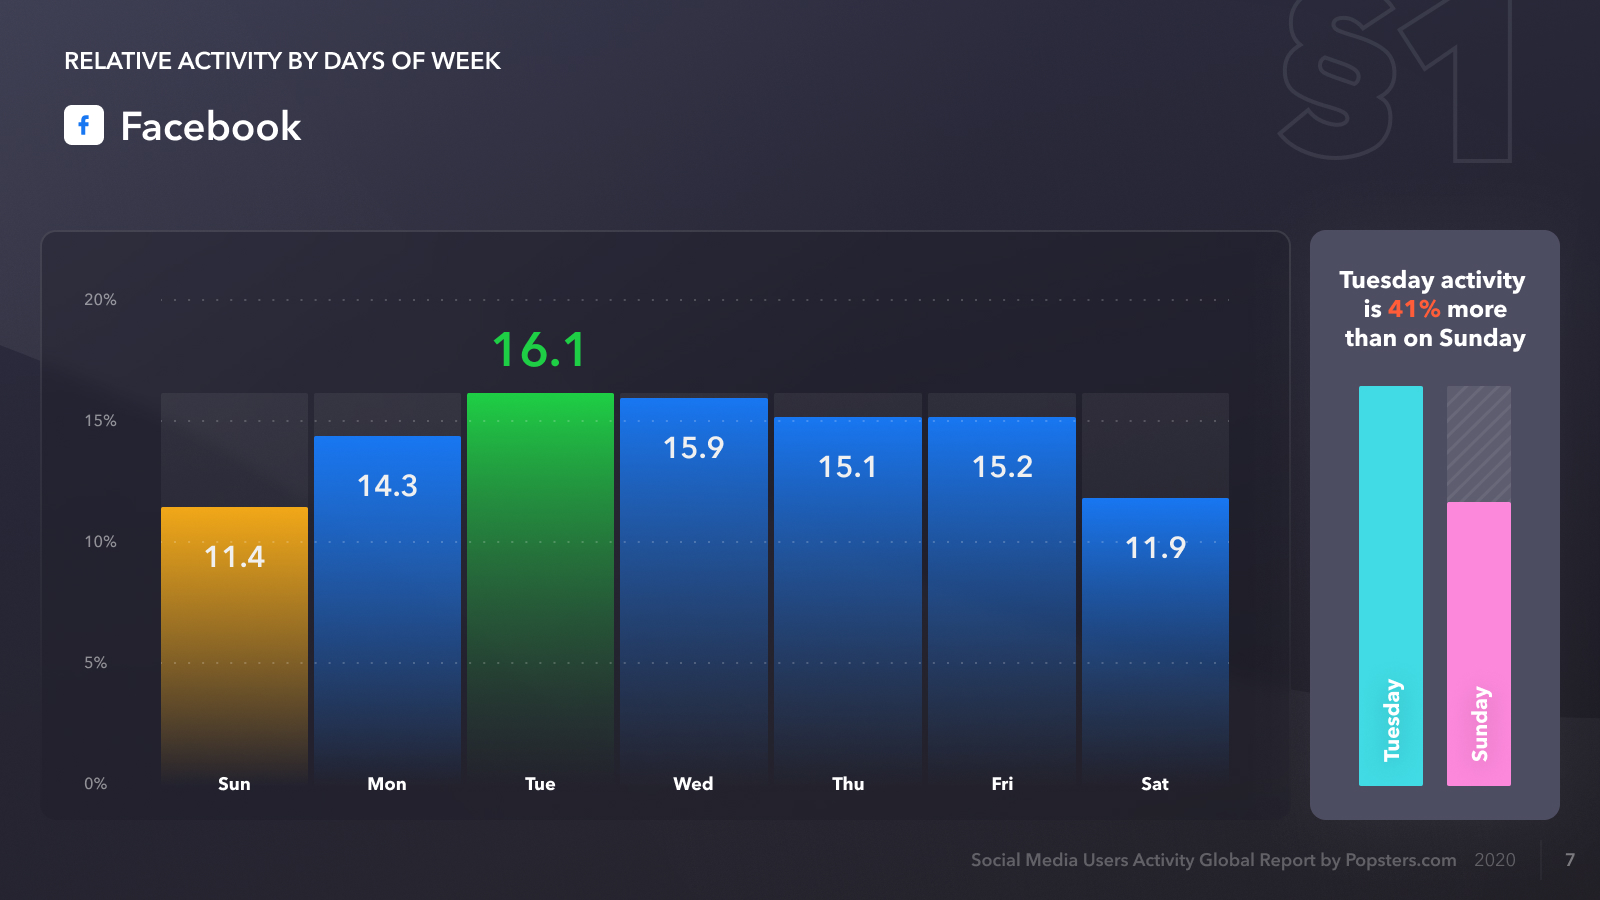 Relative activity on Facebook by days of week, for 2020